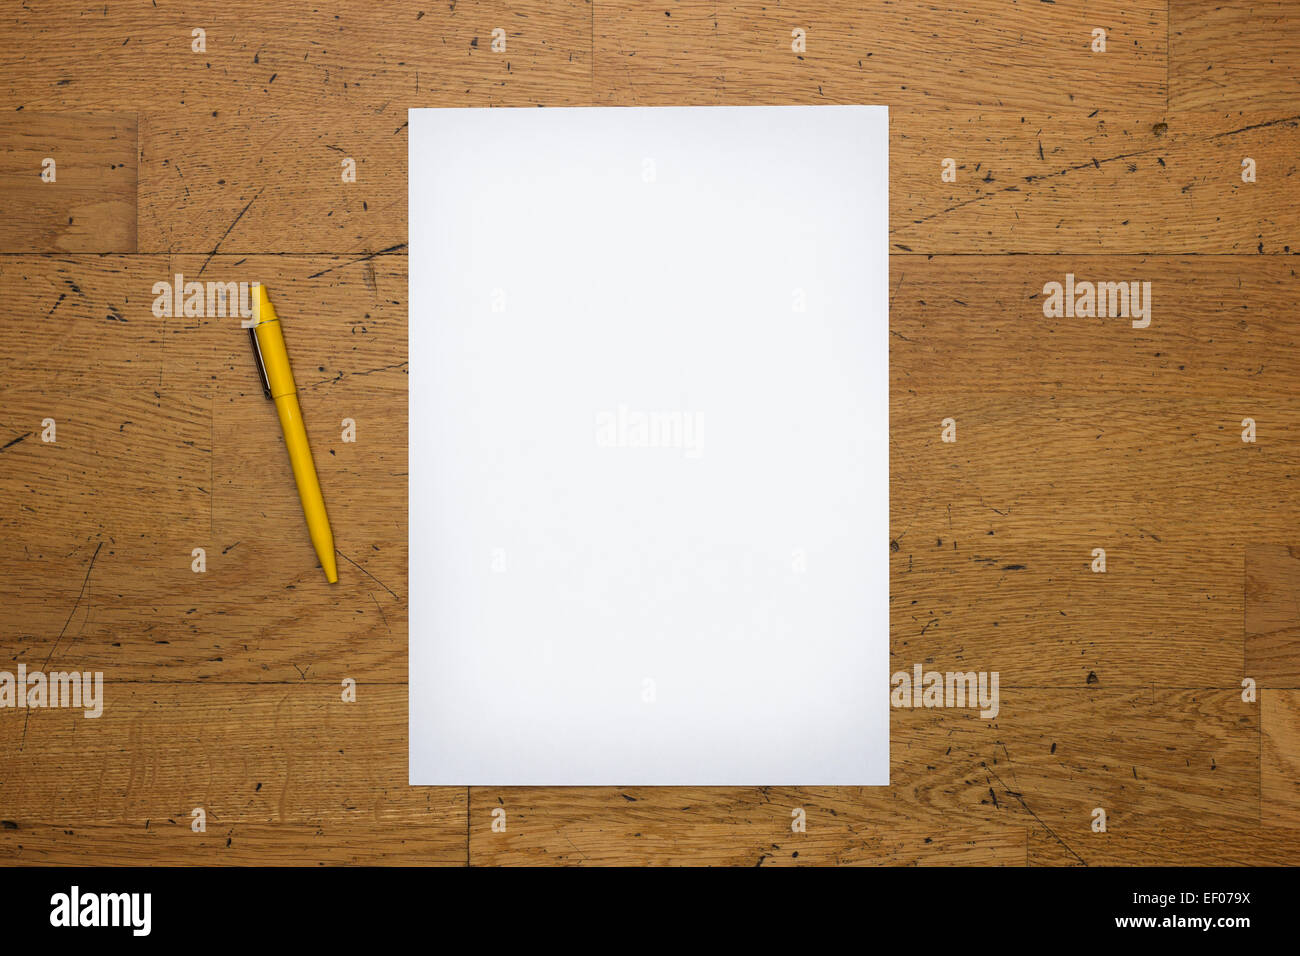 Pen and a blank white paper sheet on a worn wooden table surface, viewed from above - Stock Image